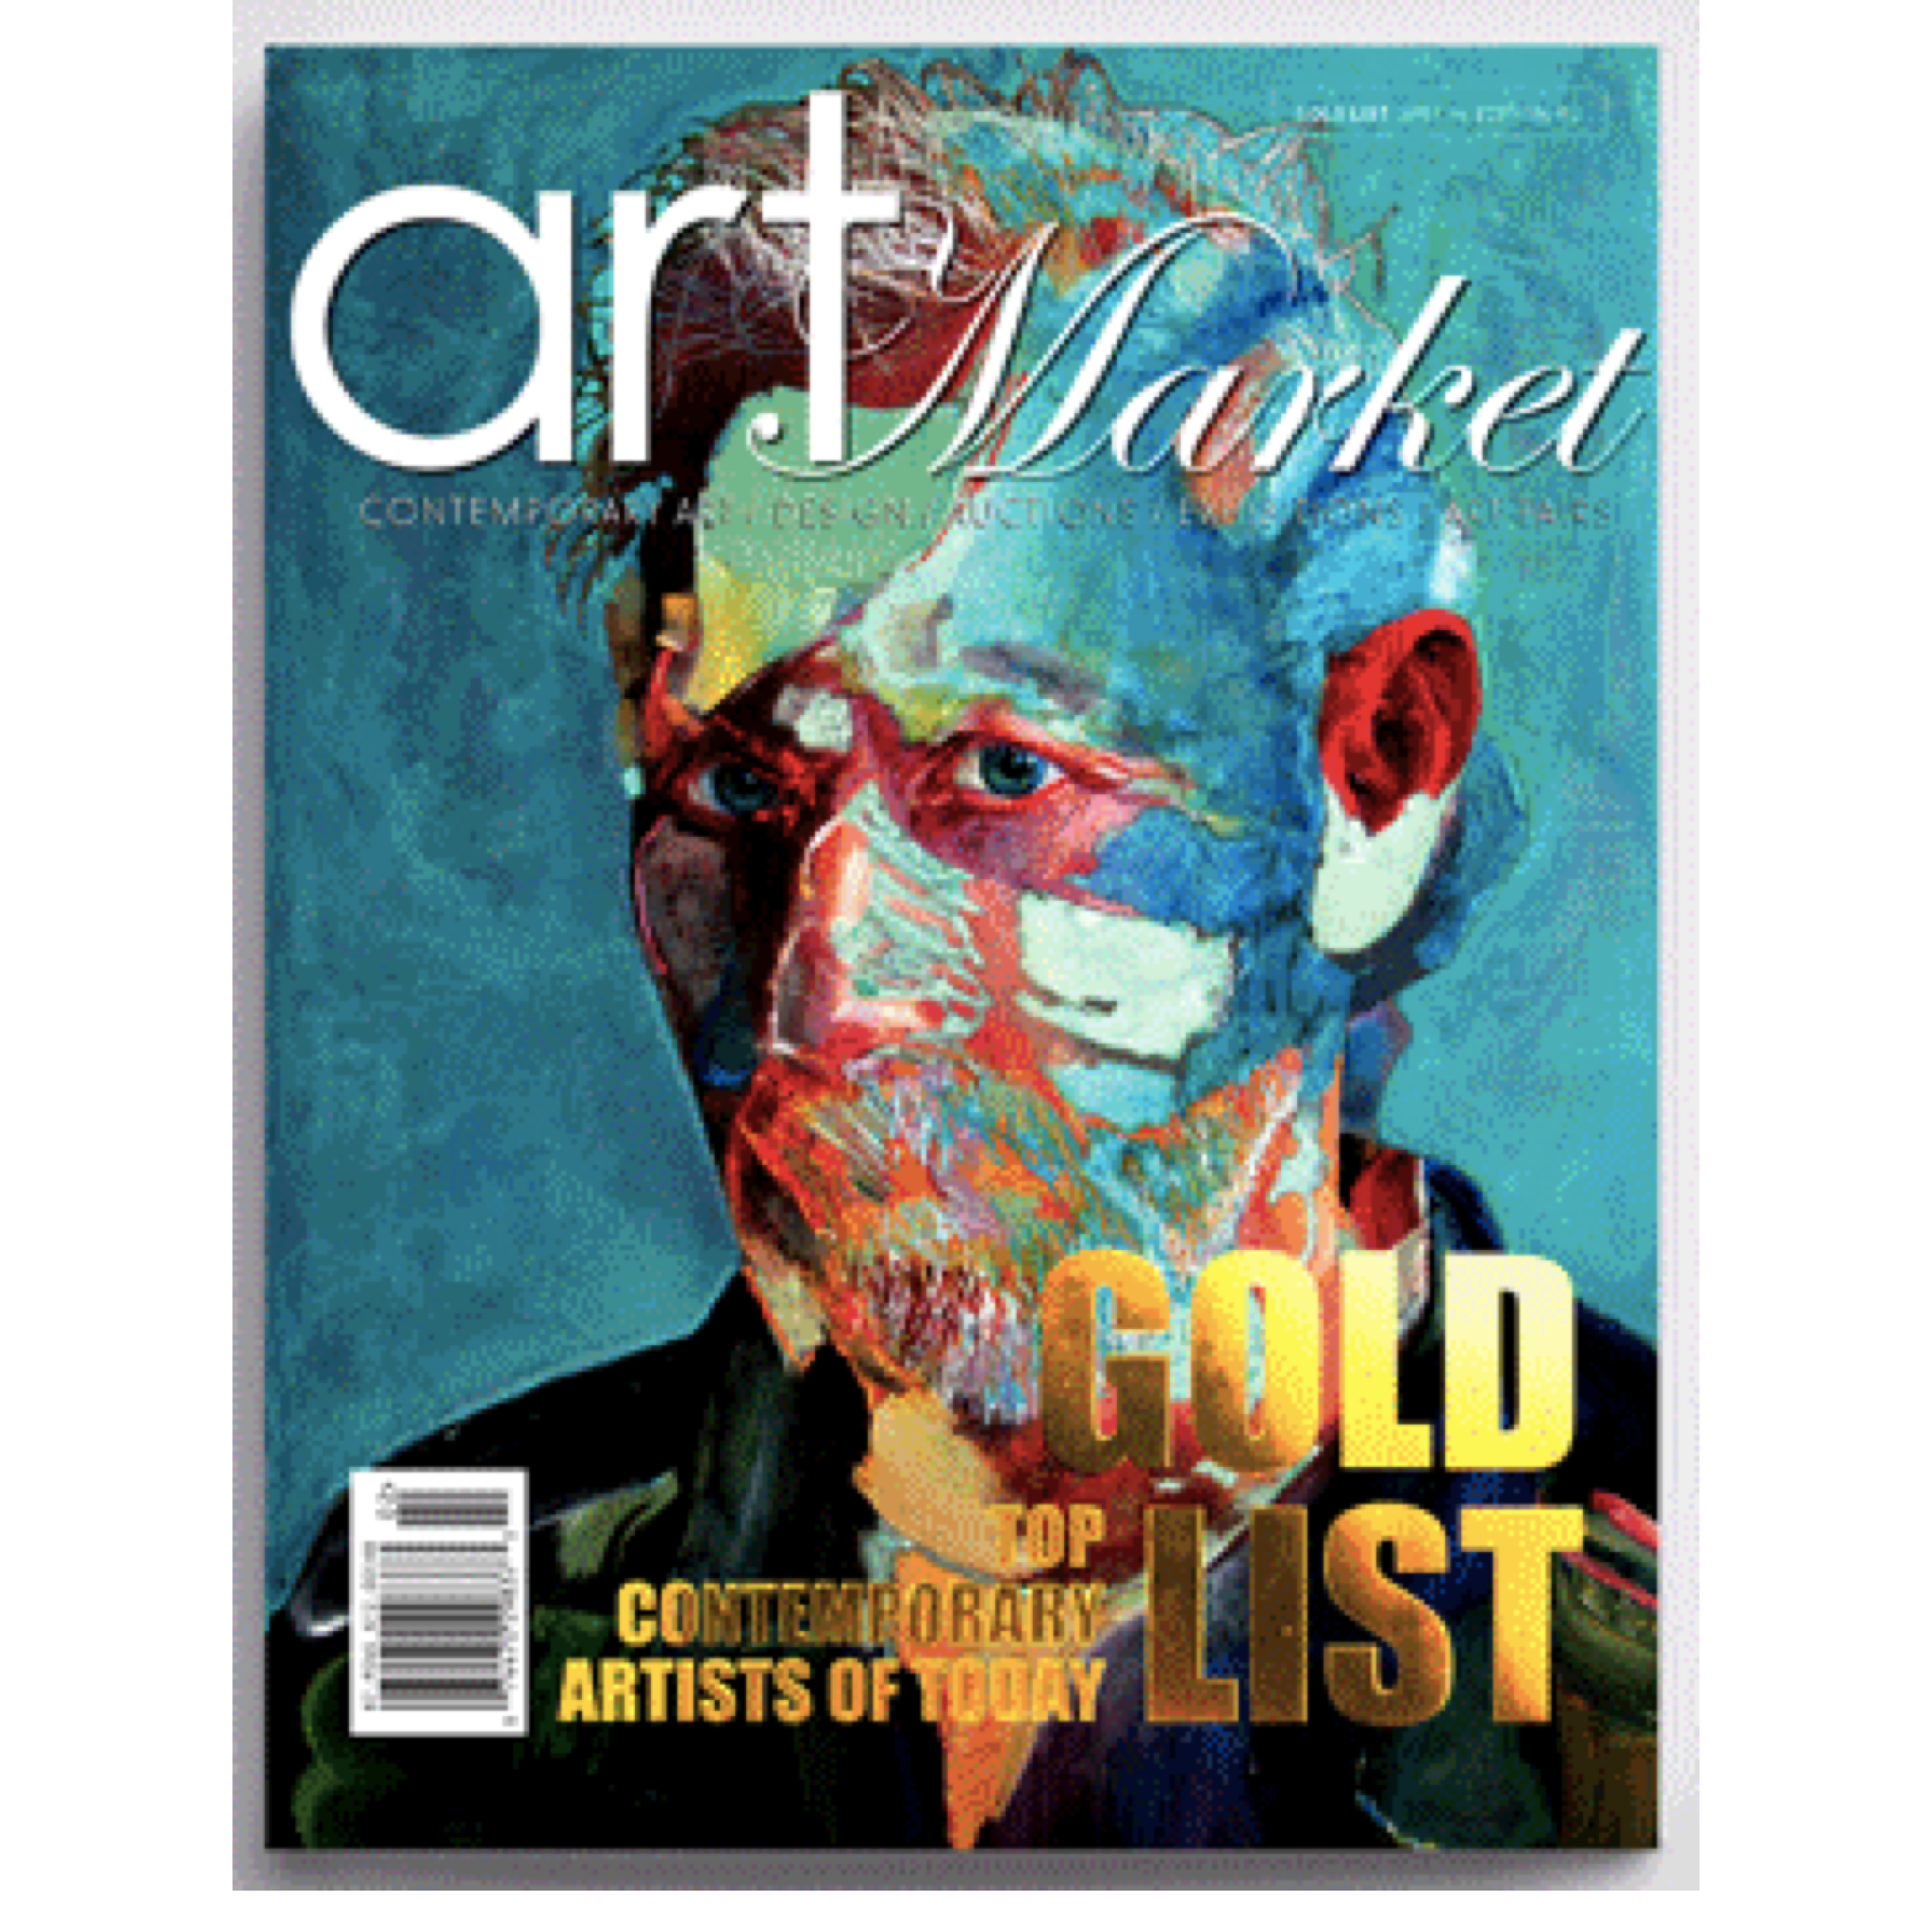 Art Market Magazine, Special Edition #2:  THE GOLD LIST: Top Contemporary Artist of Today 2018